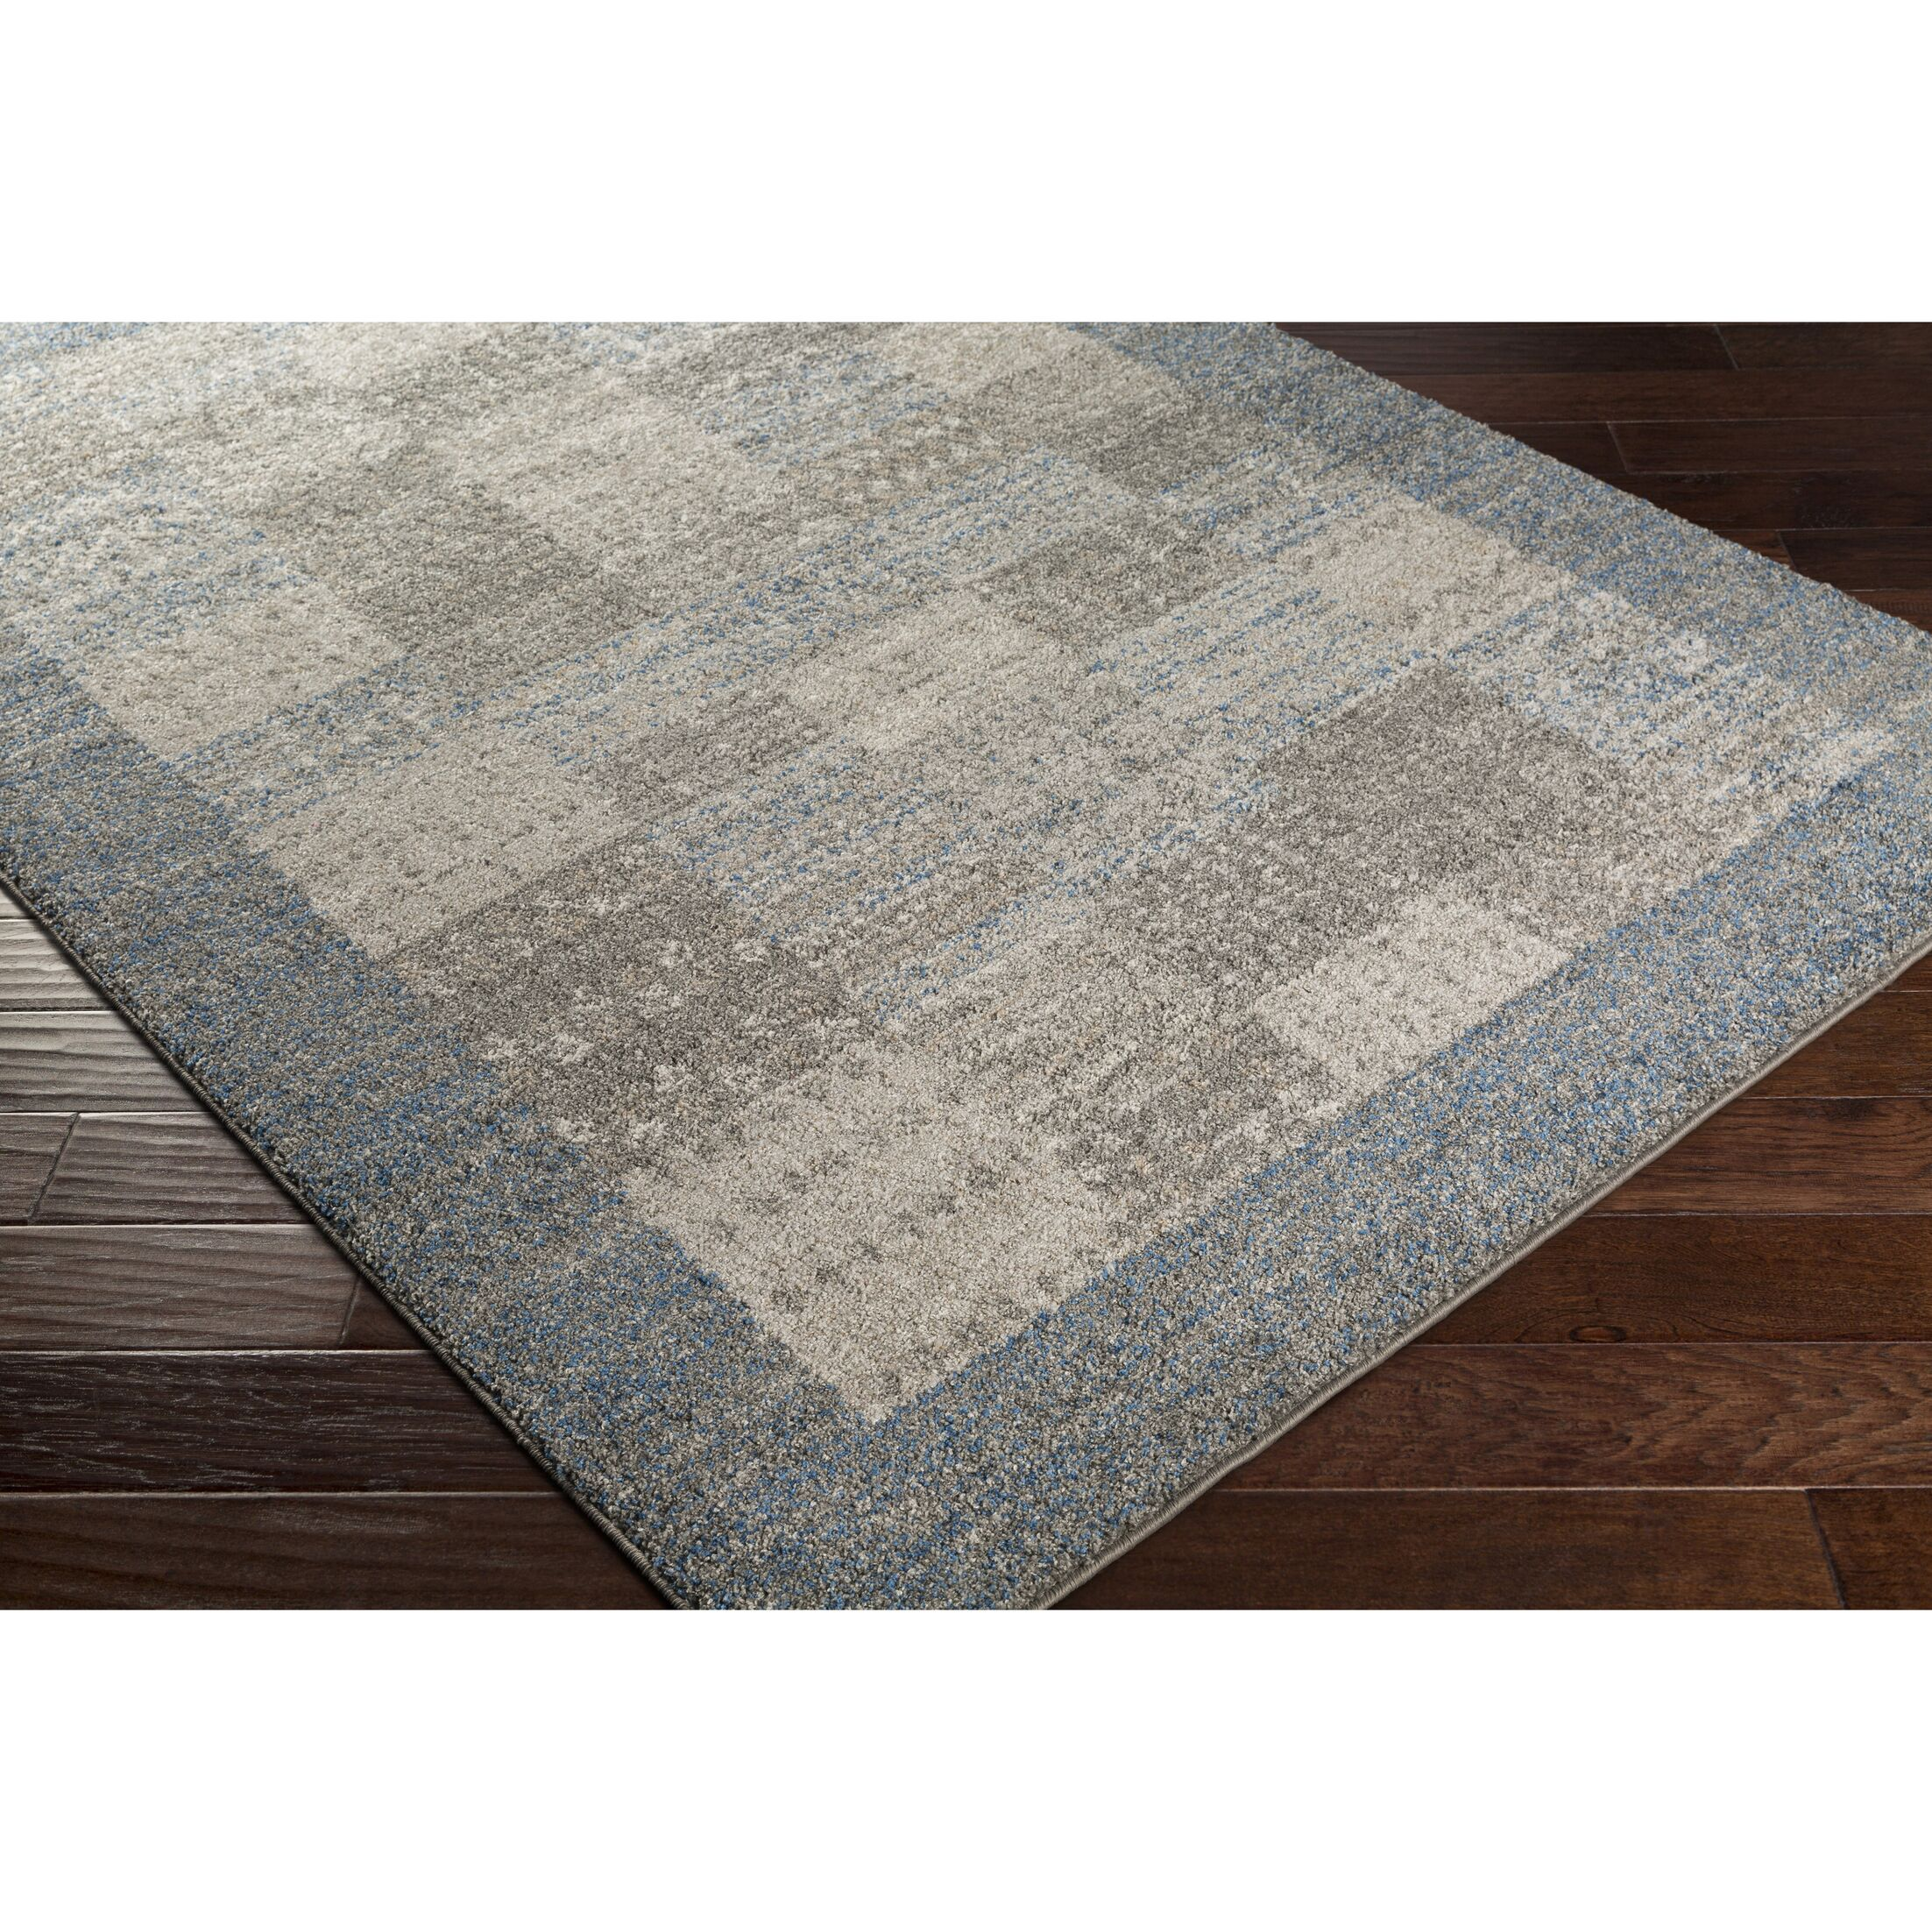 Addora Blue/Gray Area Rug Rug Size: Rectangle 5' x 7'6